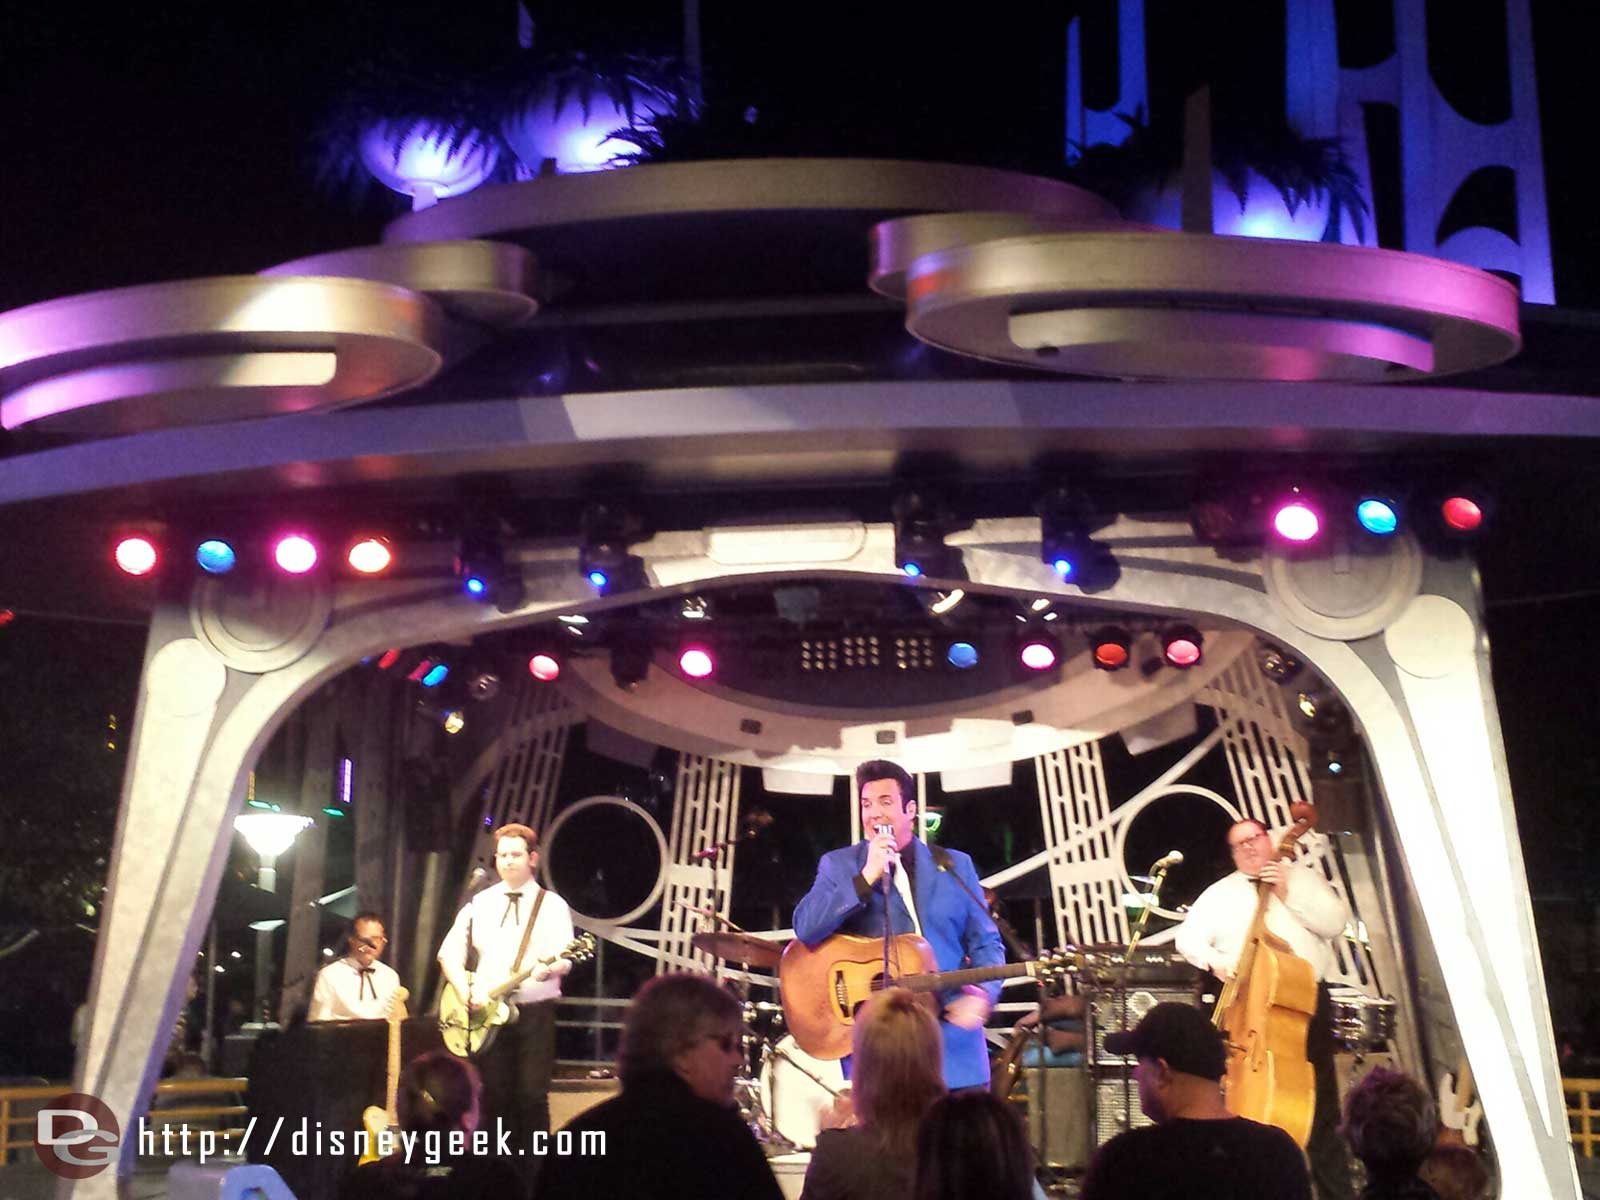 Elvis, Scot Bruce, is performing tonight at Tomorrowland Terrace #Disneyland